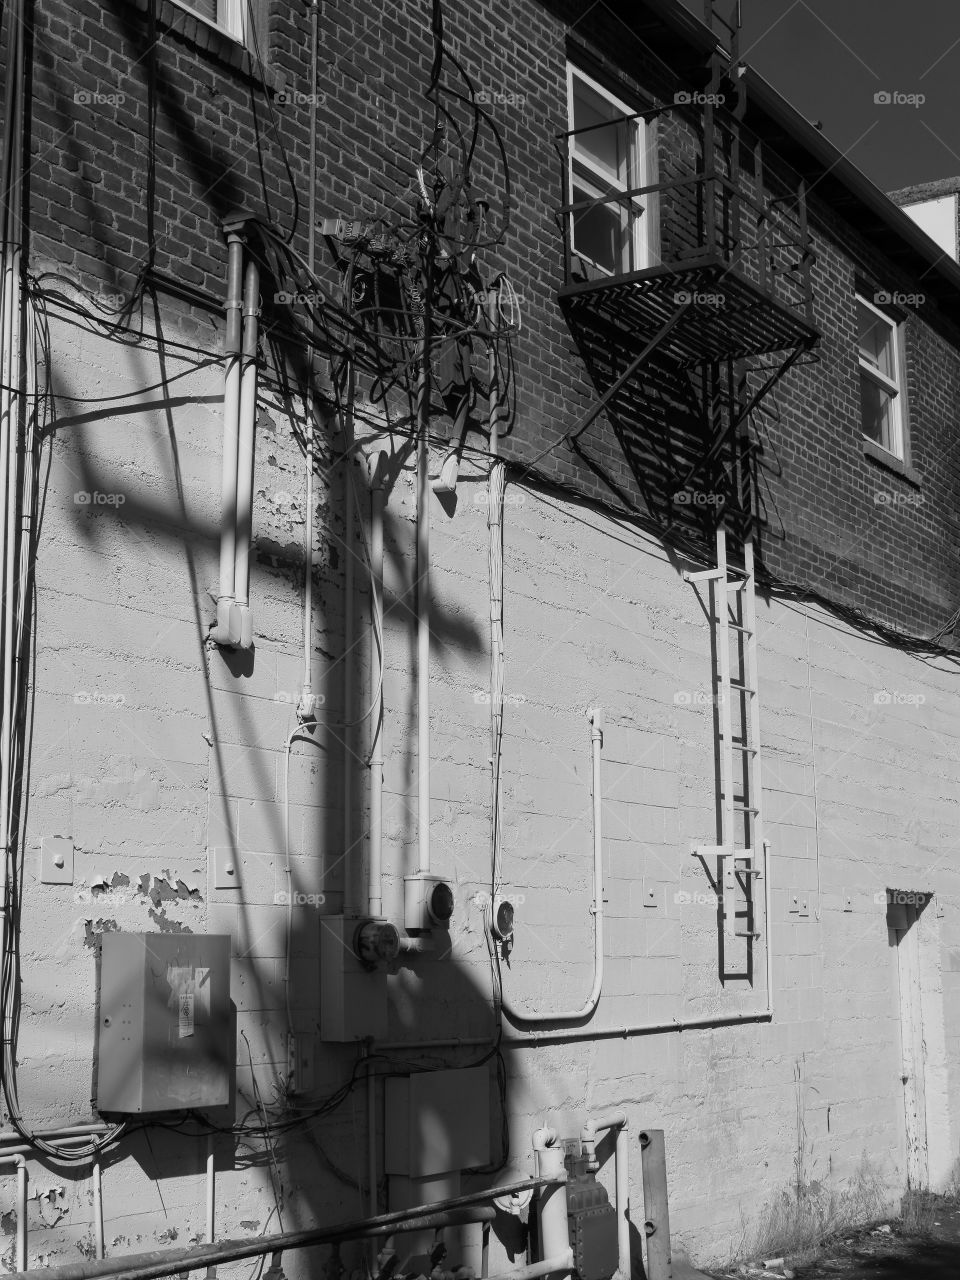 The side of an old concrete building in a city with windows and a fire escape ladder on a sunny summer day.